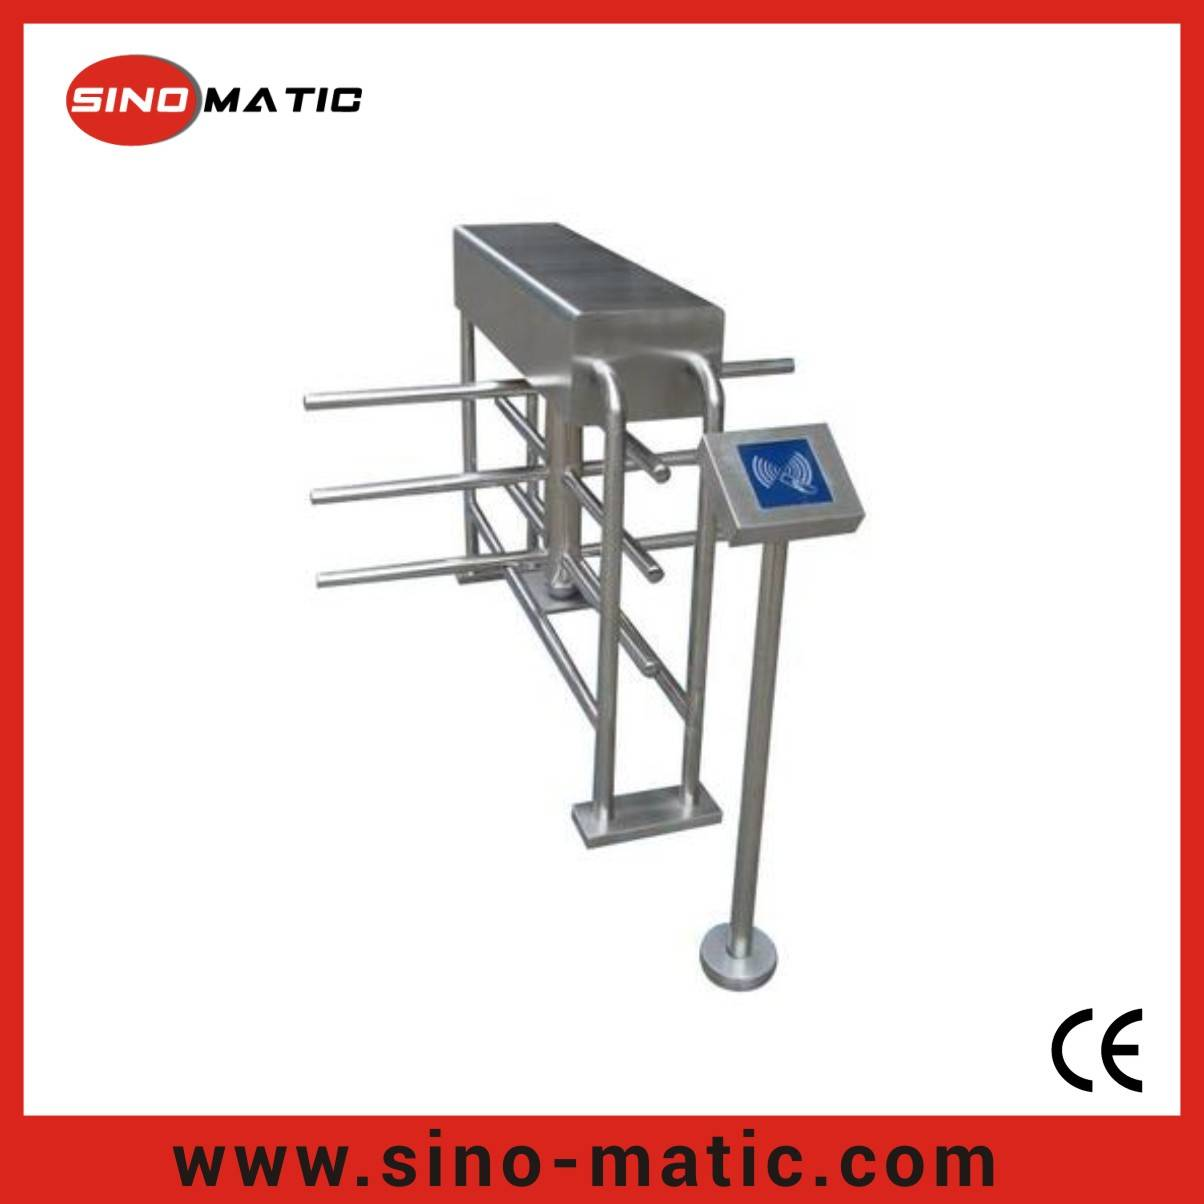 316 Stainless Steel Security Pedestrian Access Control Half Height Turnstile